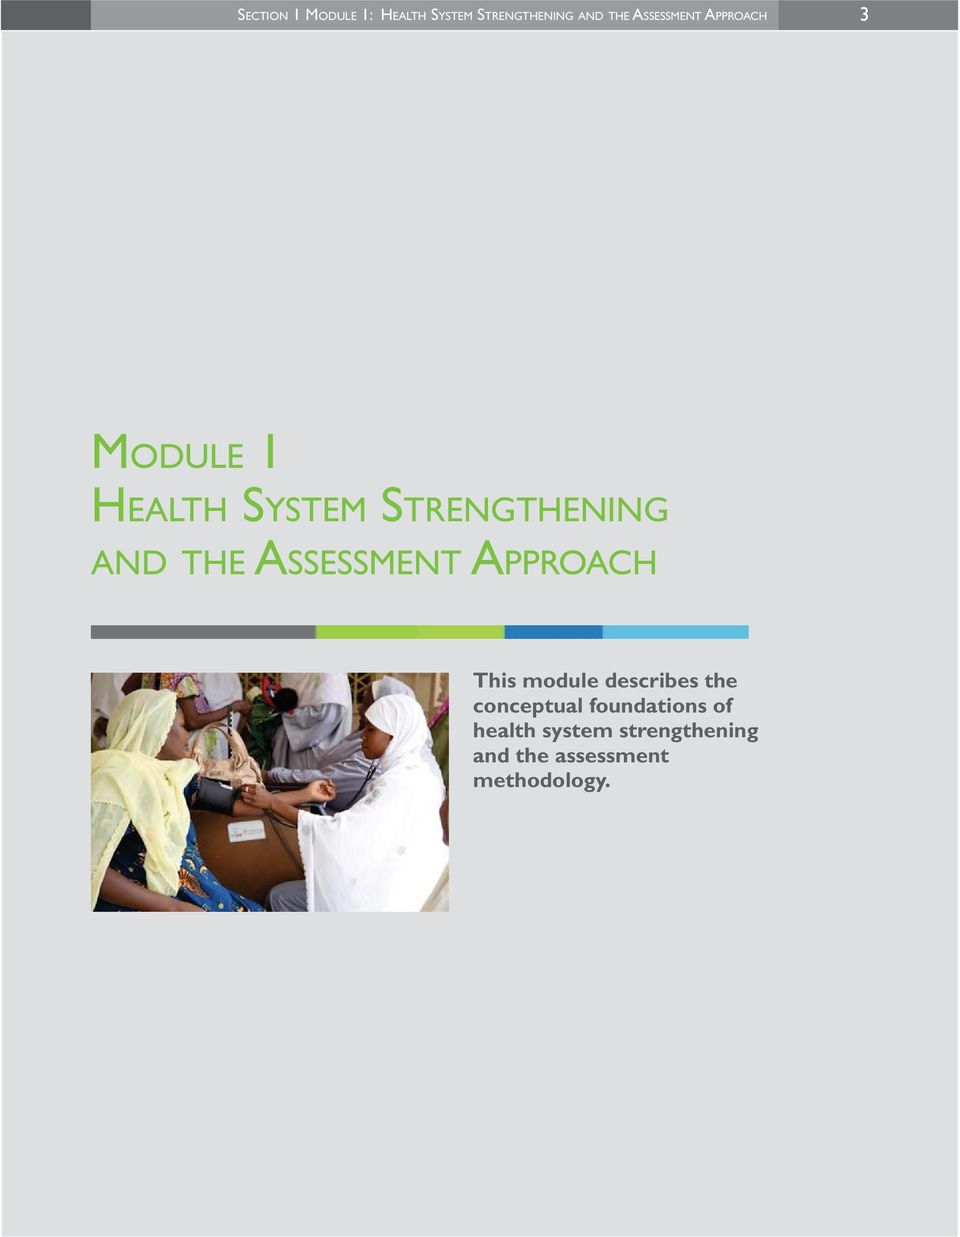 THE ASSESSMENT APPROACH This module describes the conceptual